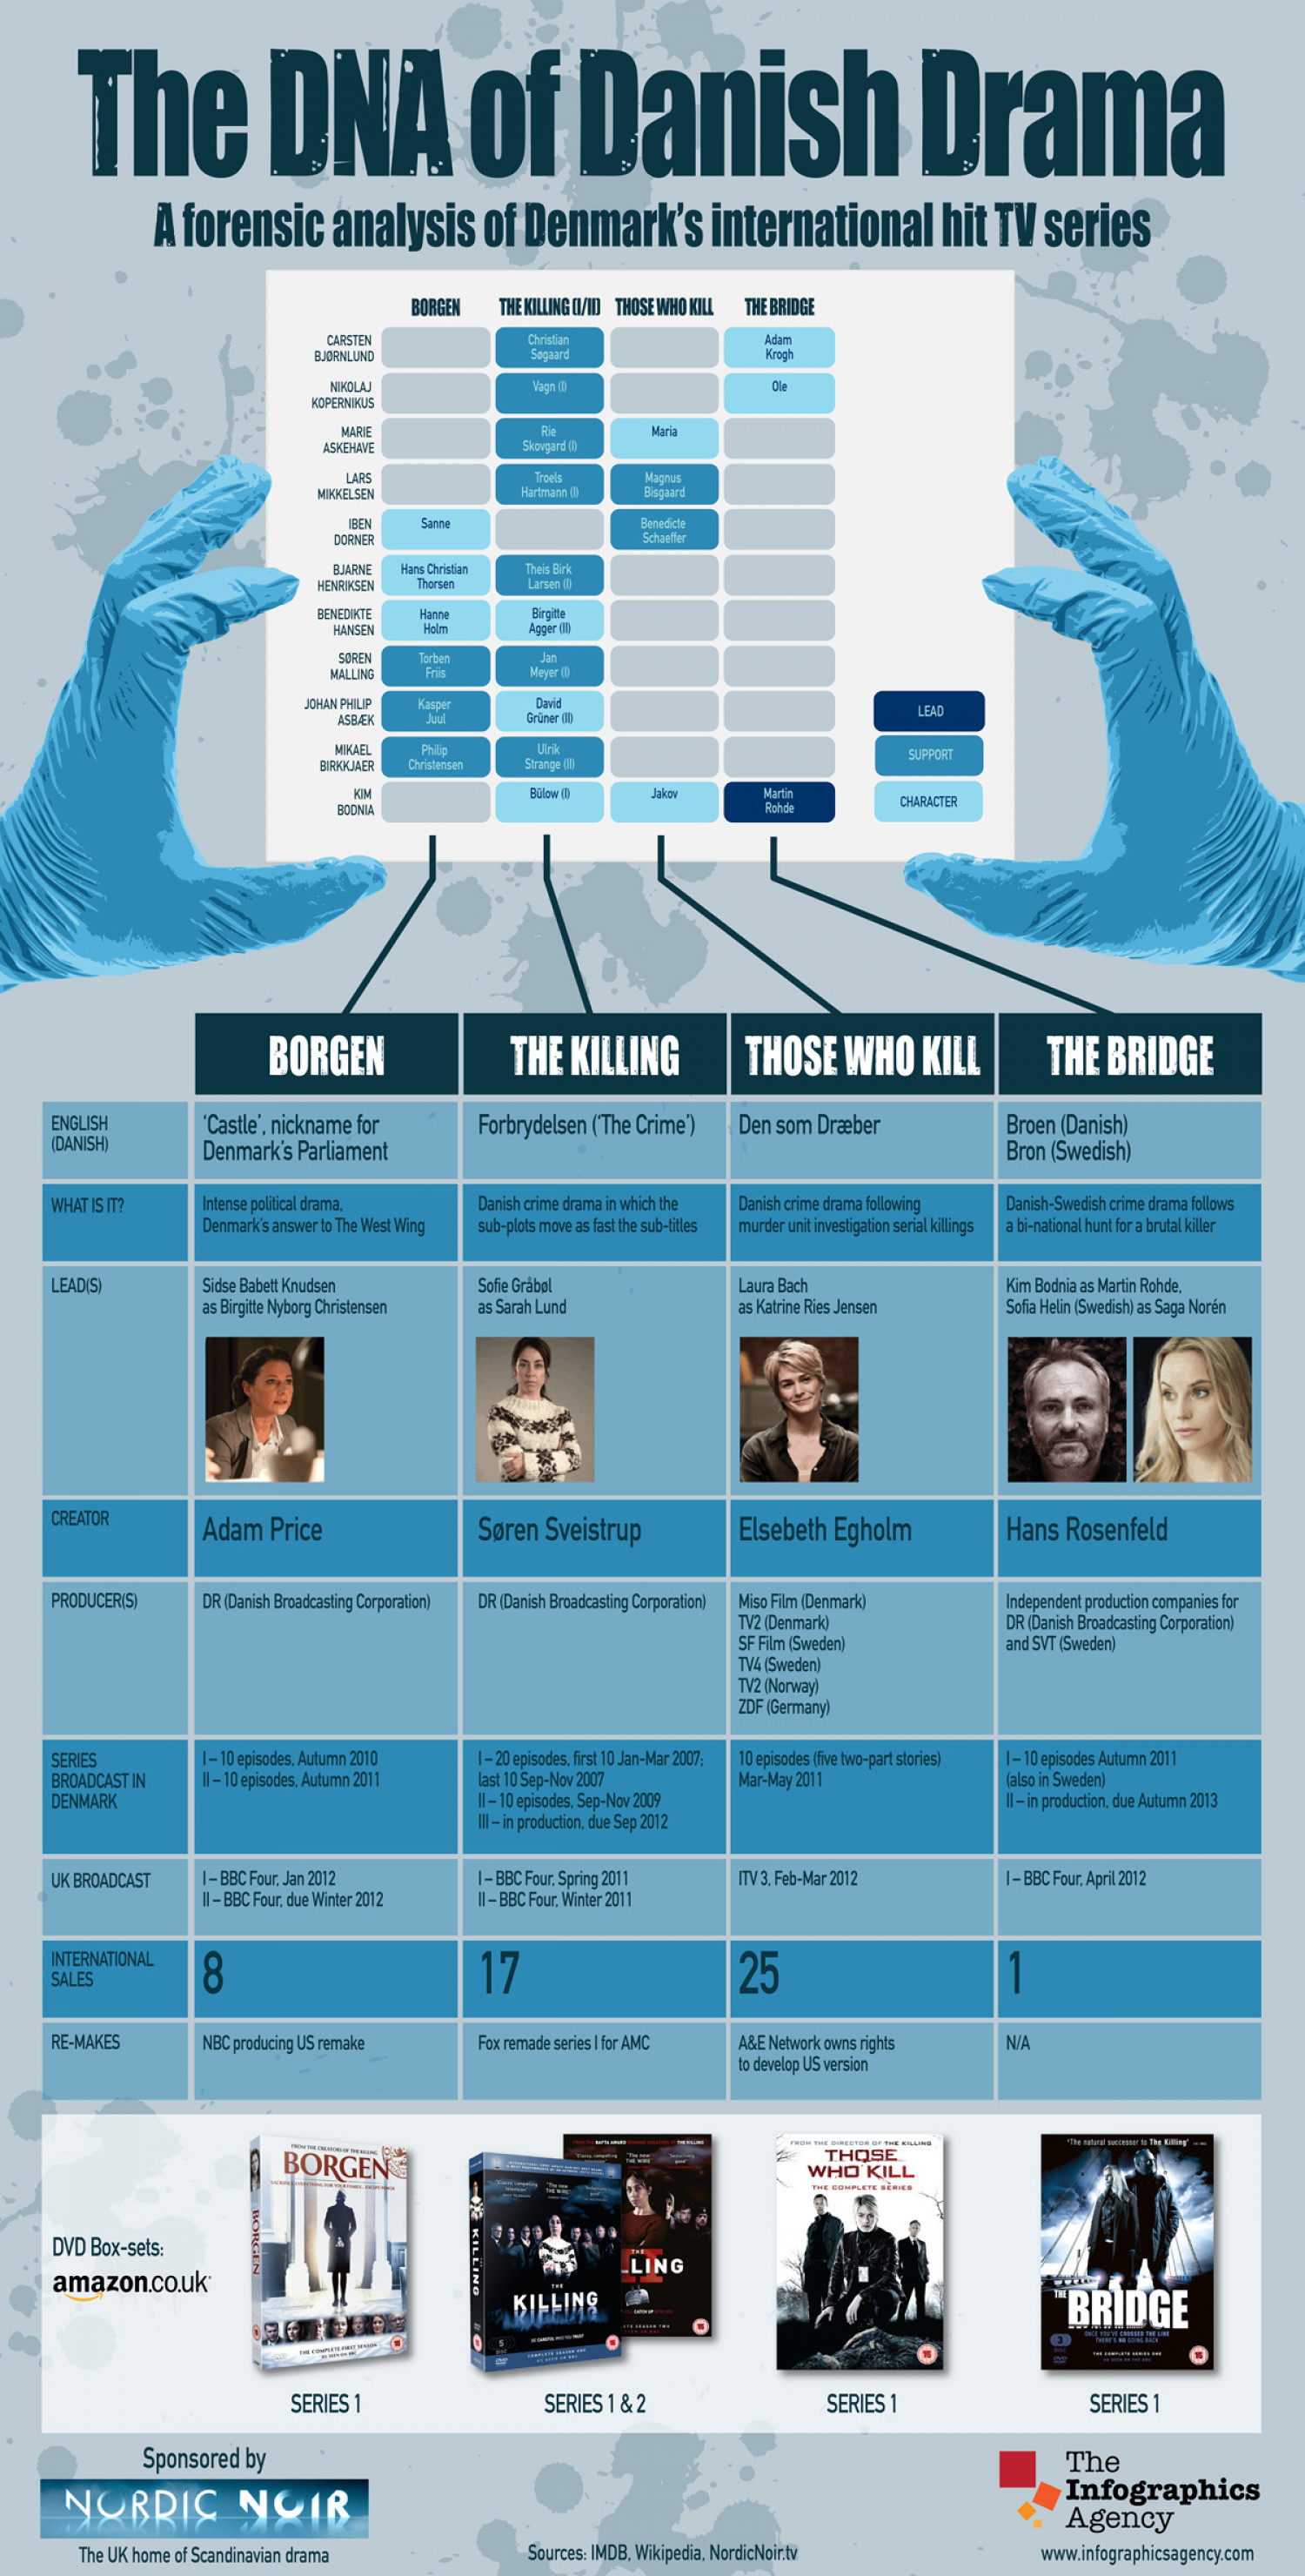 The DNA of Danish Drama Infographic